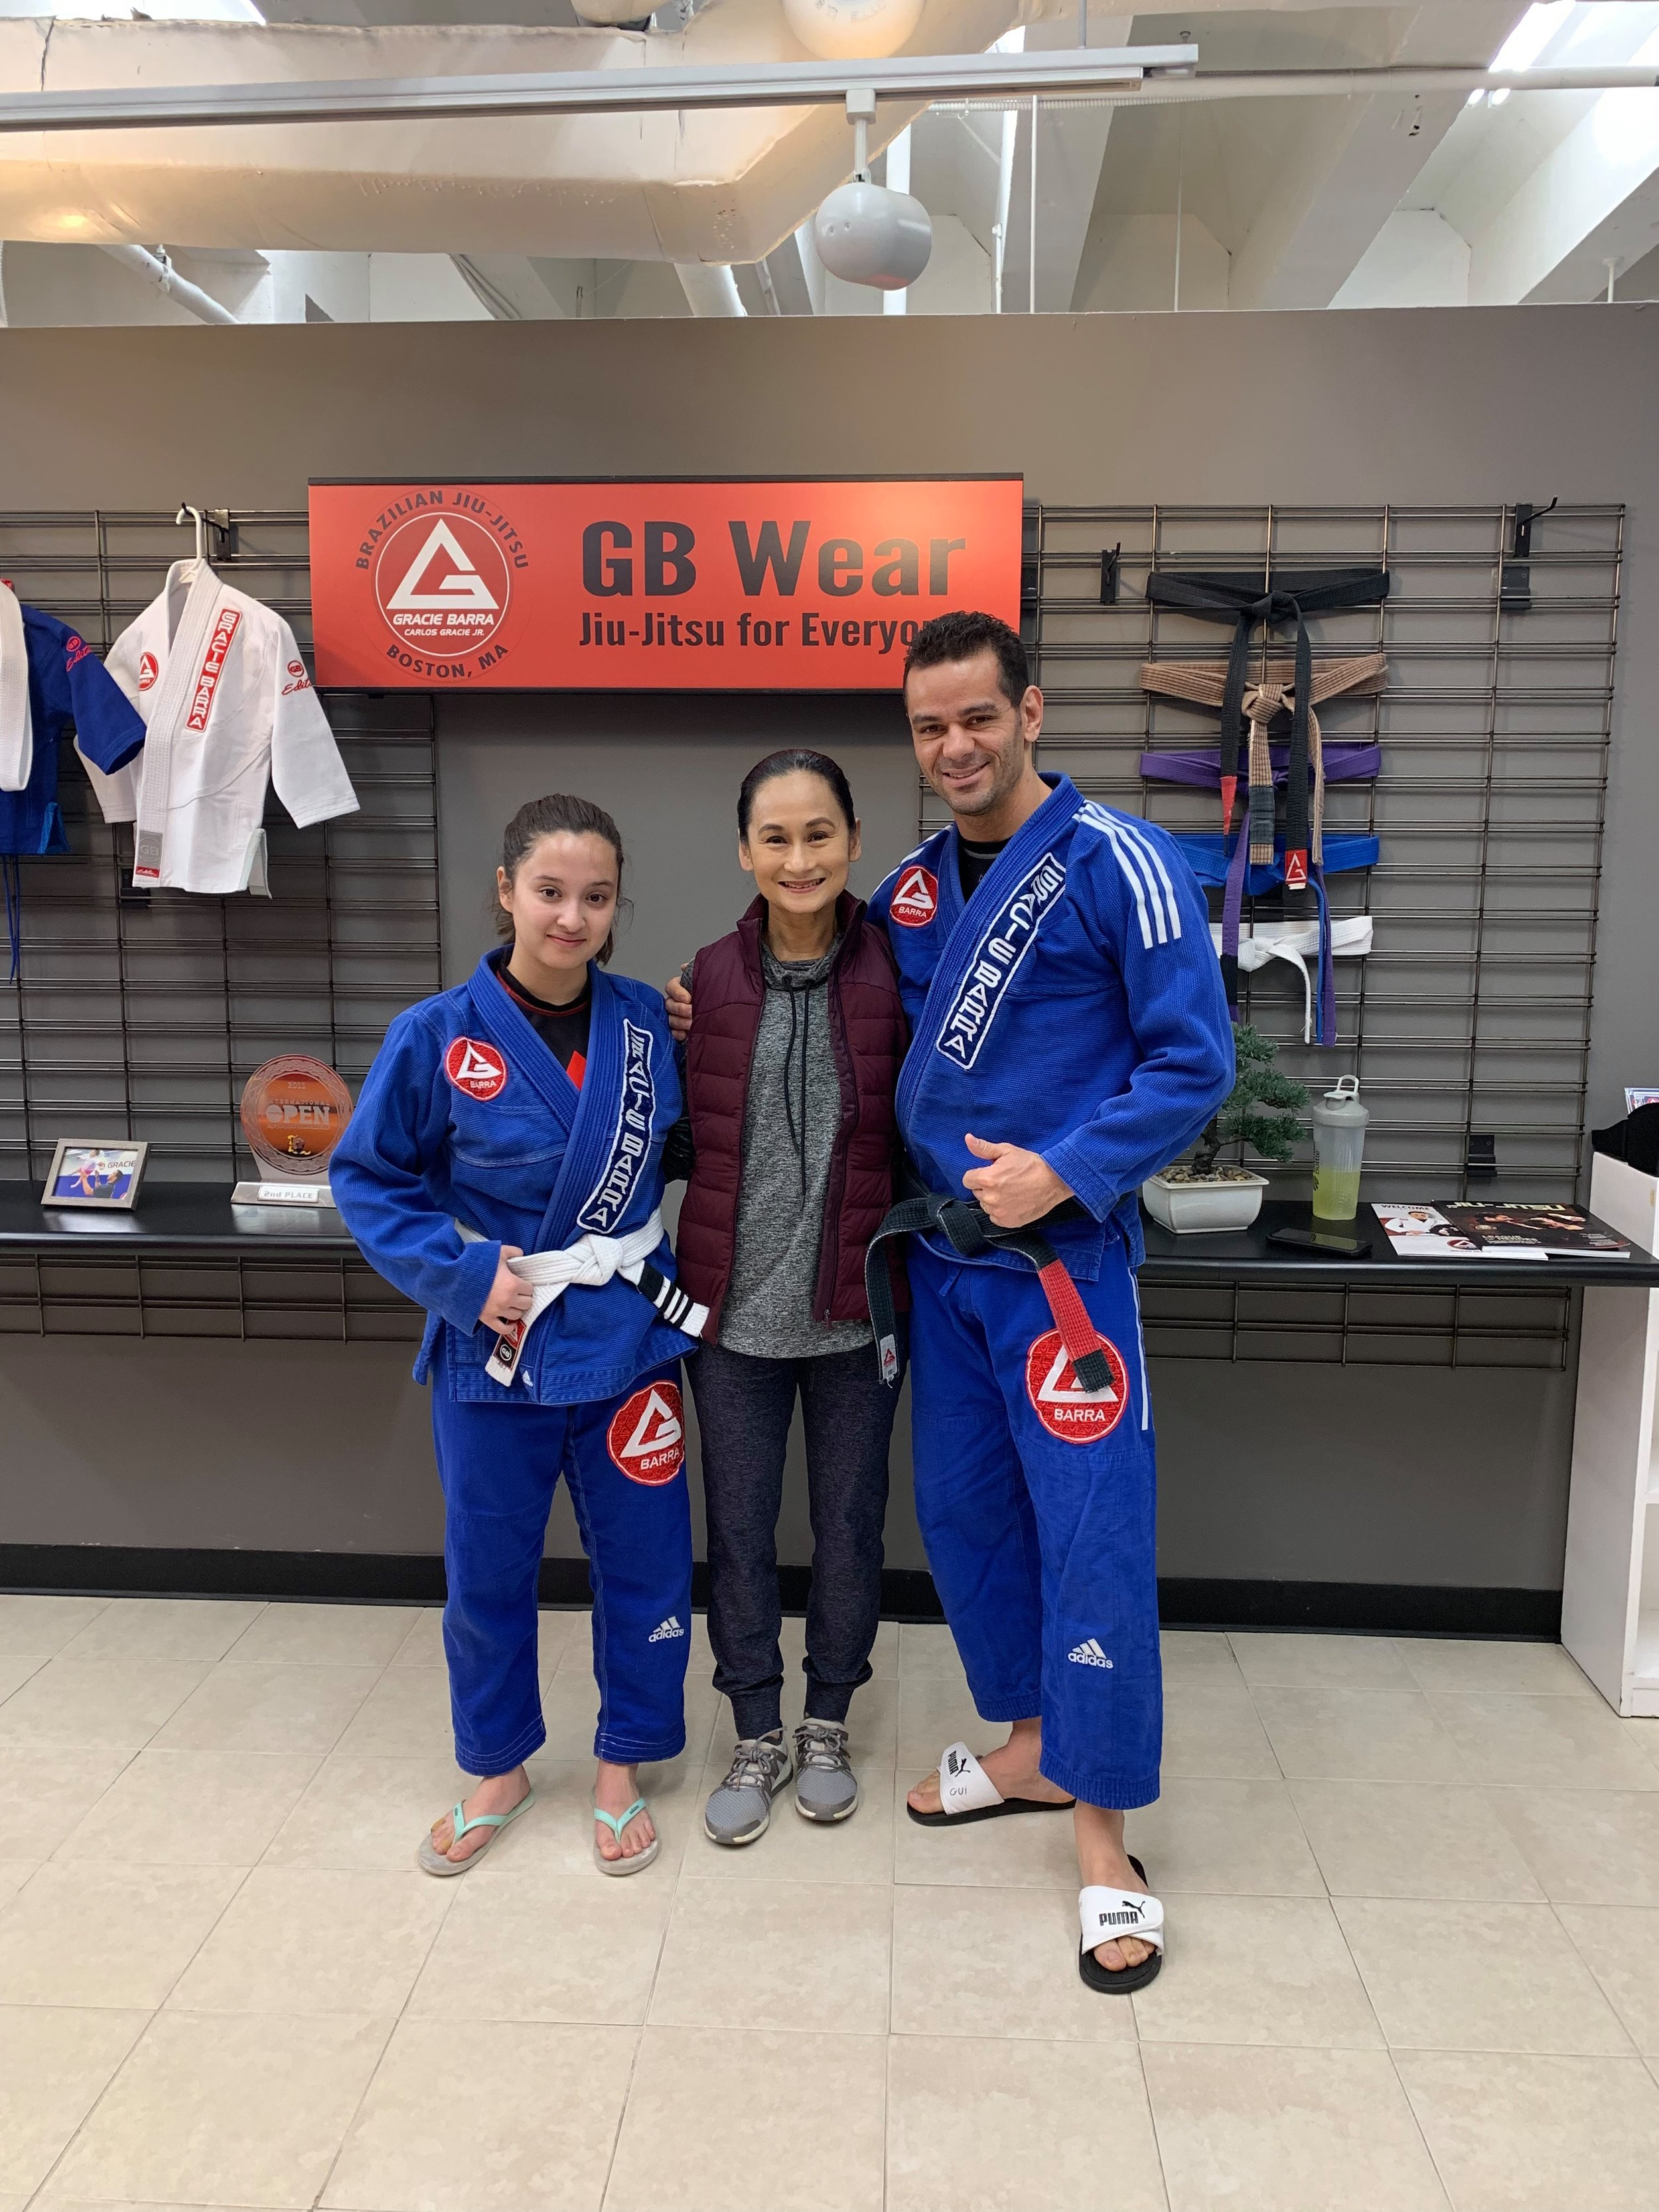 It was both a happy and surreal moment for Missy when two of her most important mentors – her mom Lisa, for ballet, and Guilherme Verissimo Pereira, for jiu jitsu – got to meet in Boston. Photo courtesy of Missy Macuja-Elizalde